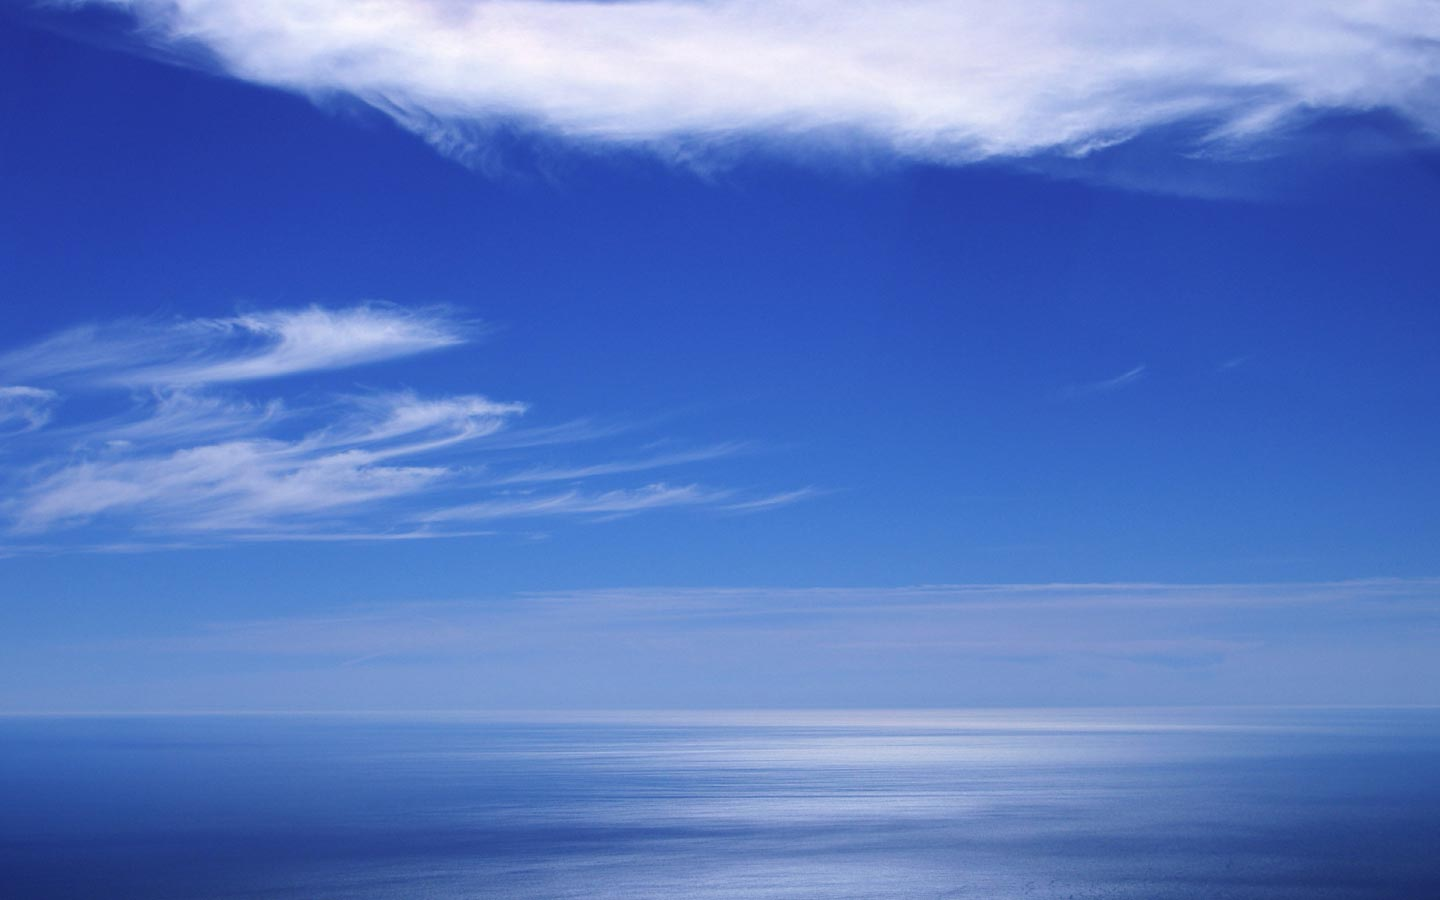 Blue sea horizon weather wallpaper image featuring clouds